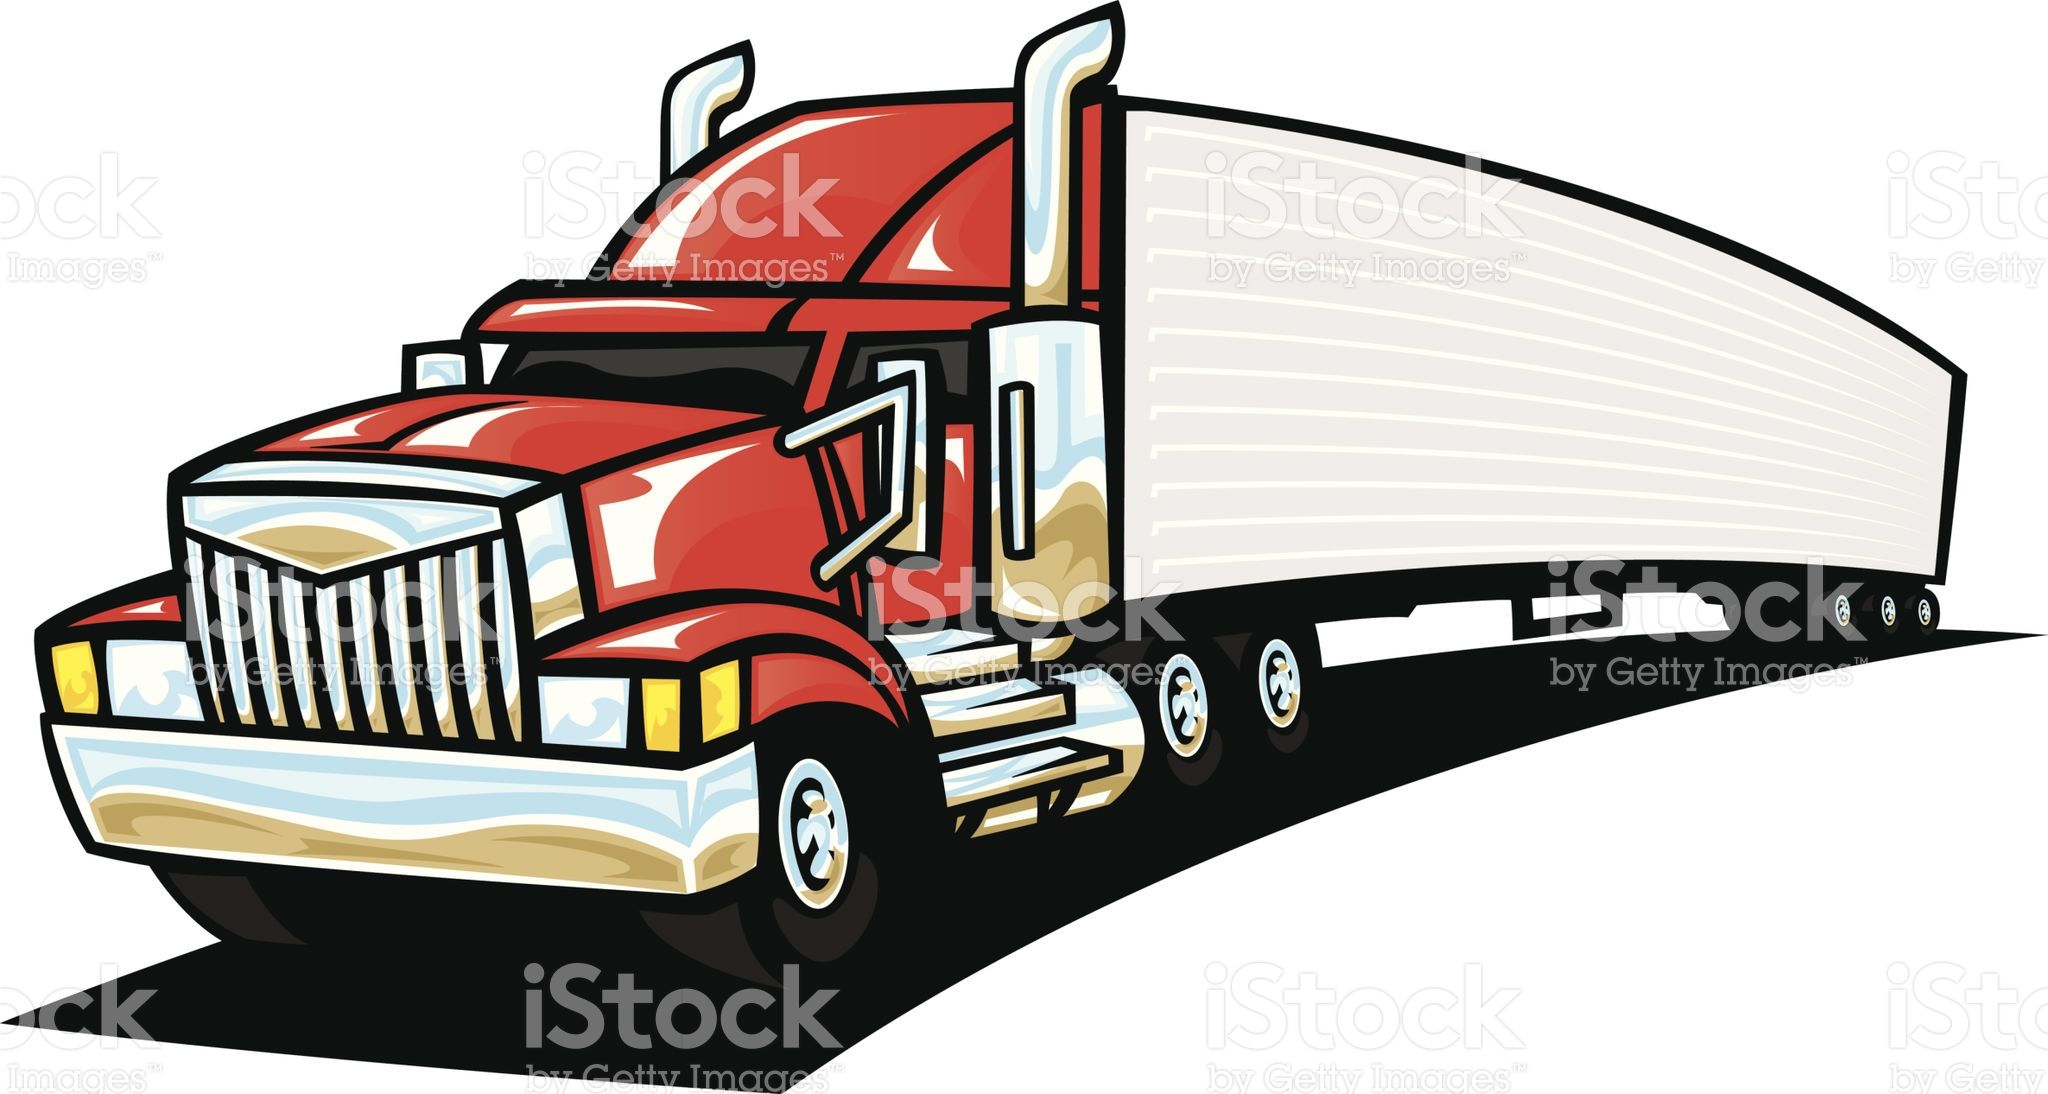 Garage Semi Truck And Grain Trailer With Images Vinyl Window